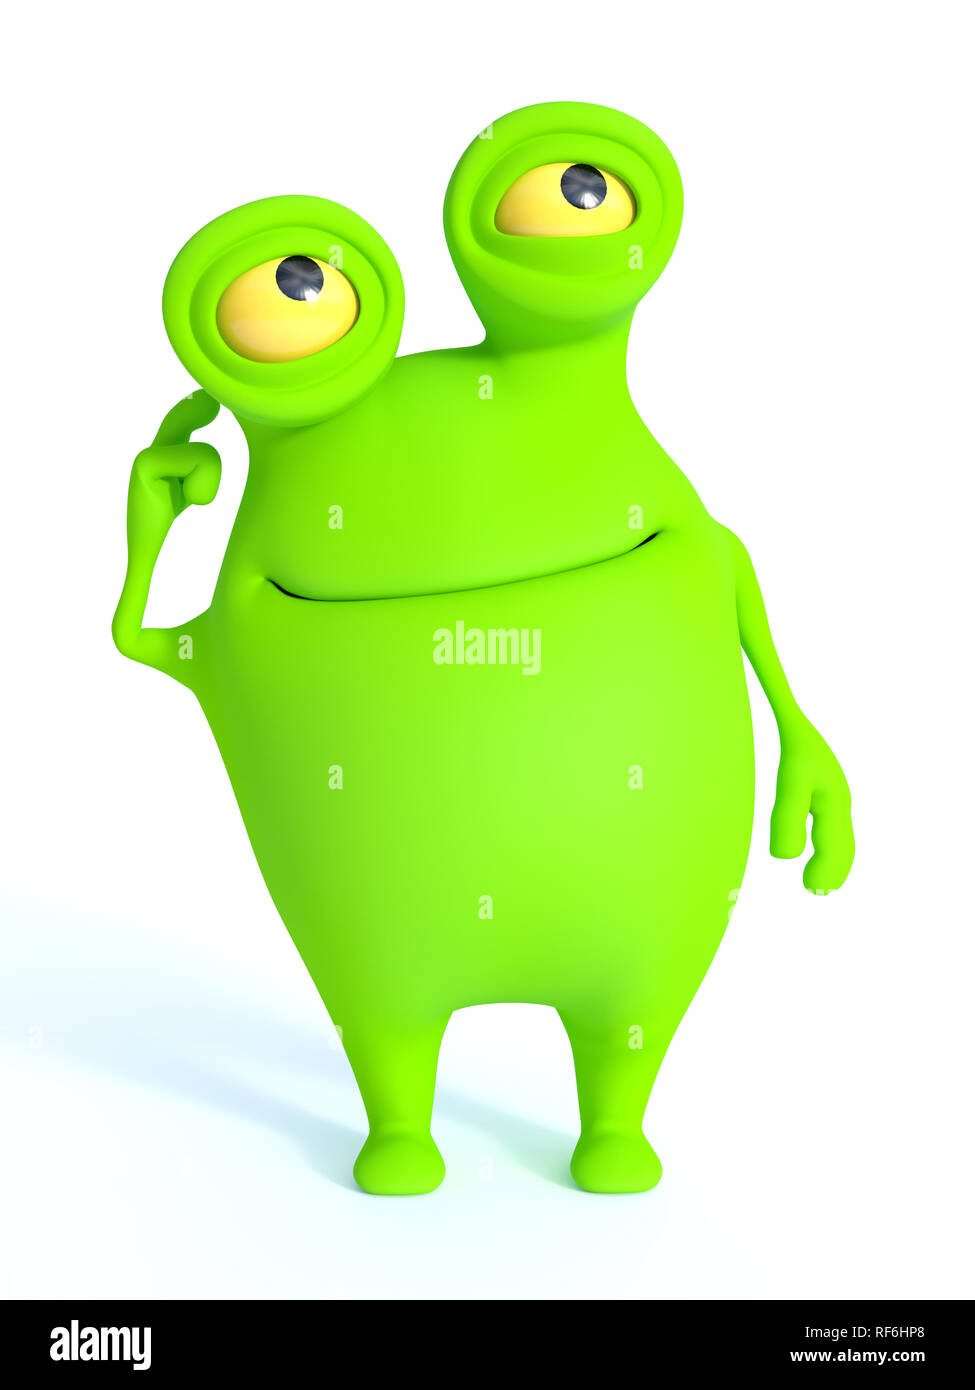 A cute charming green cartoon monster thinking about something. White background. - Stock Image